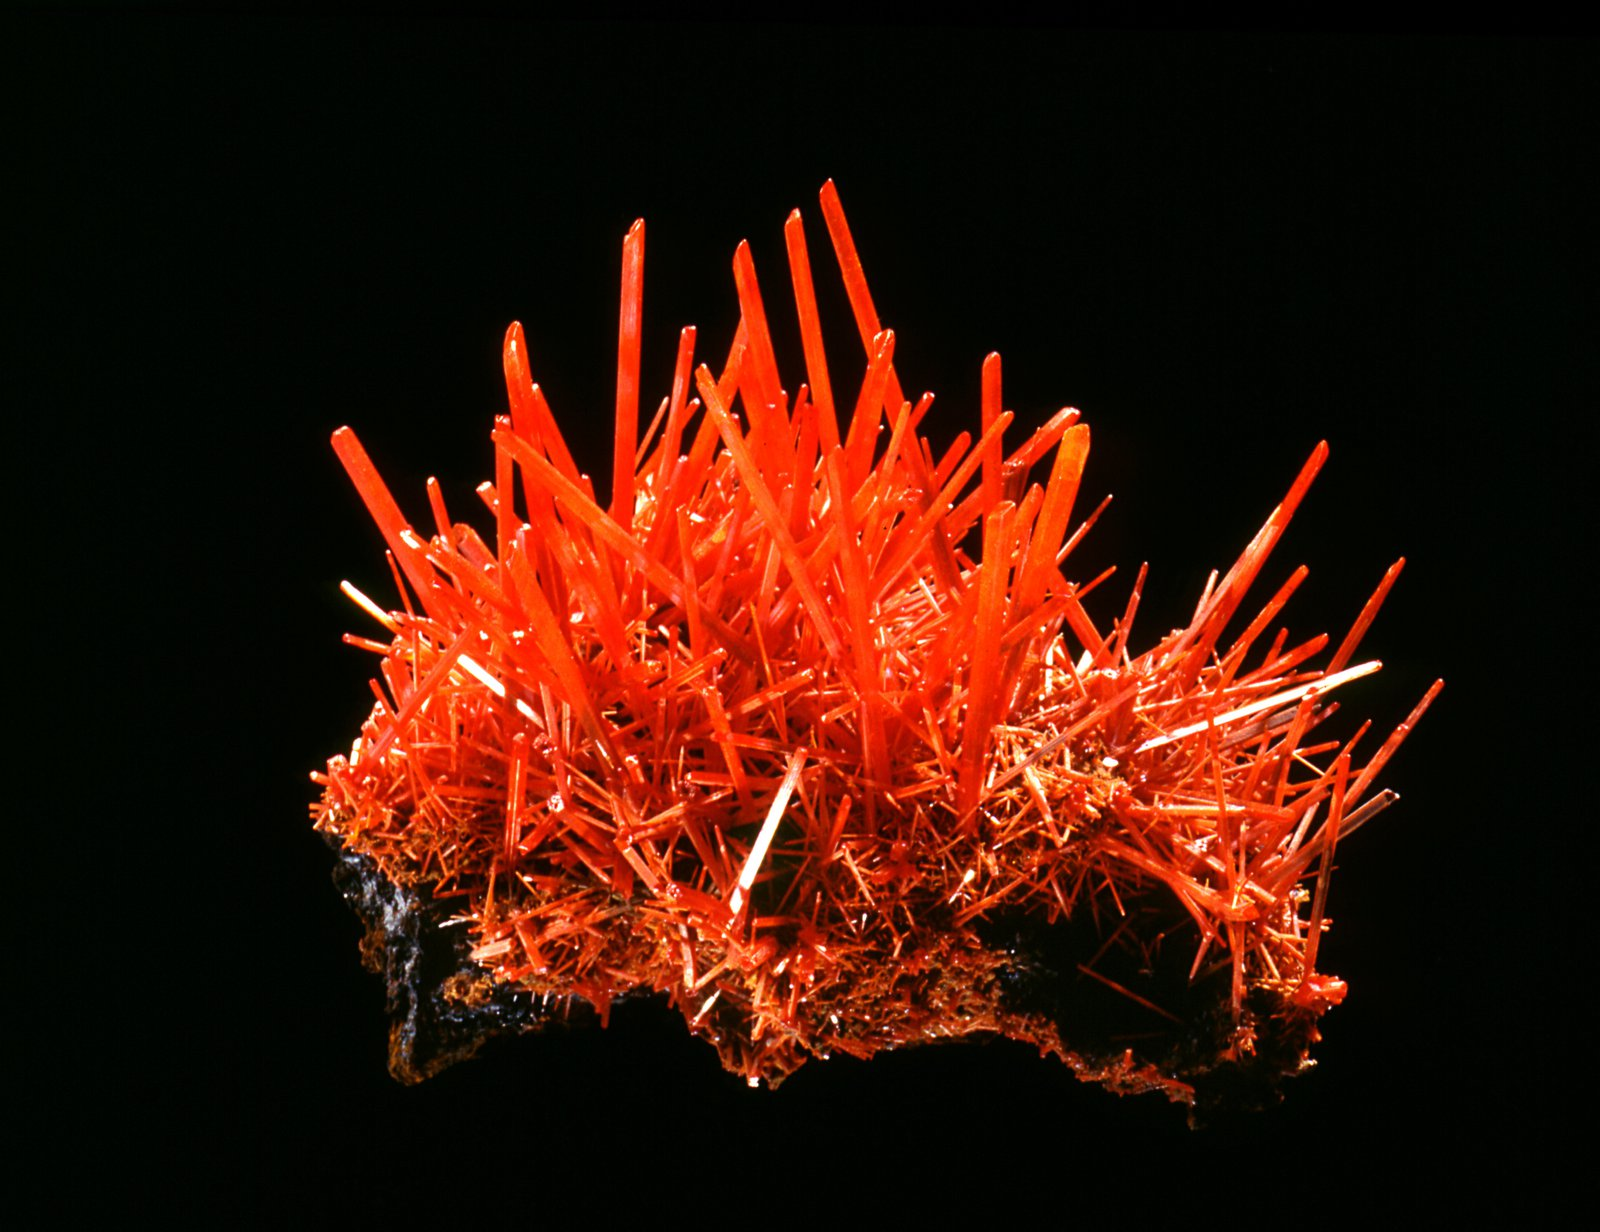 Crocoite on Limonite